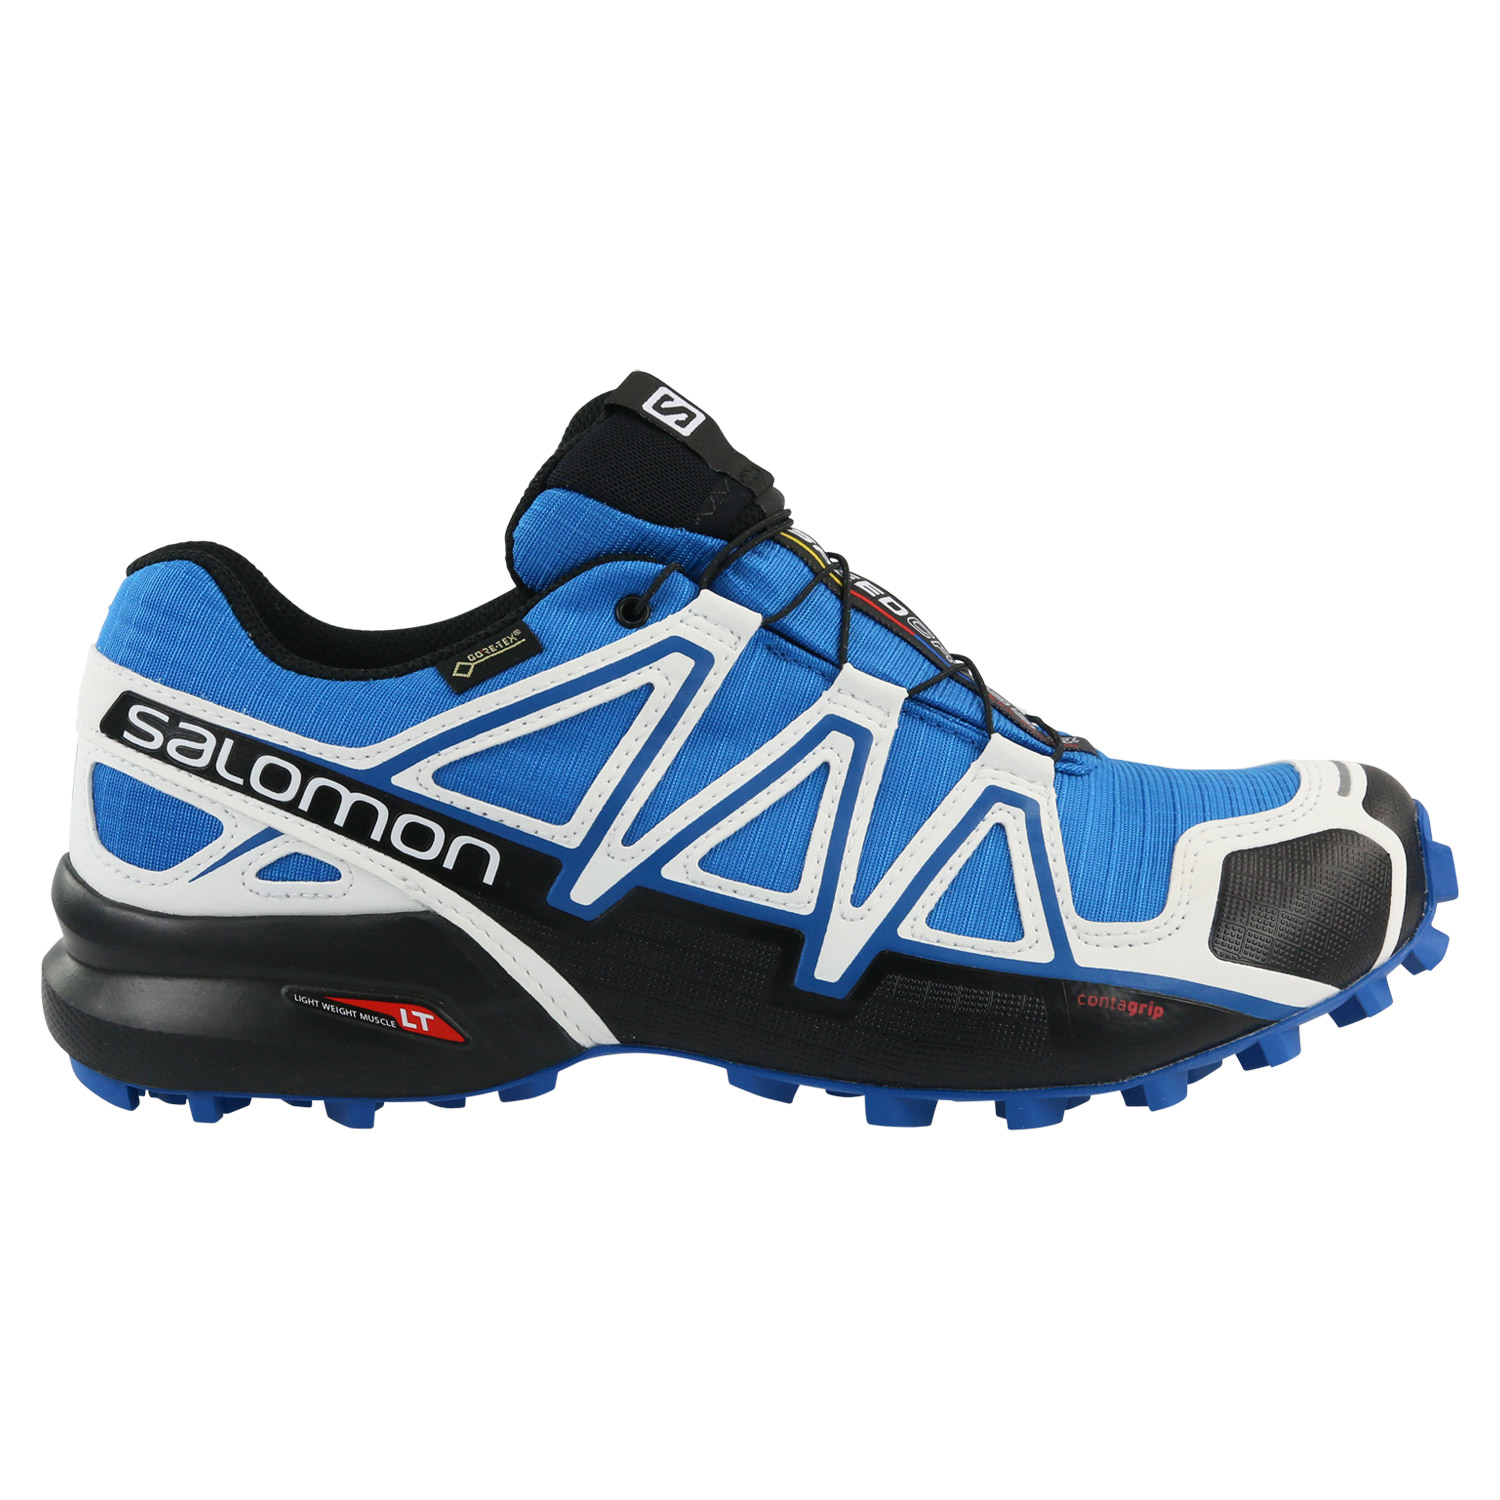 salomon speedcross 4 gtx schuhe laufschuhe trail running herren gore tex ebay. Black Bedroom Furniture Sets. Home Design Ideas